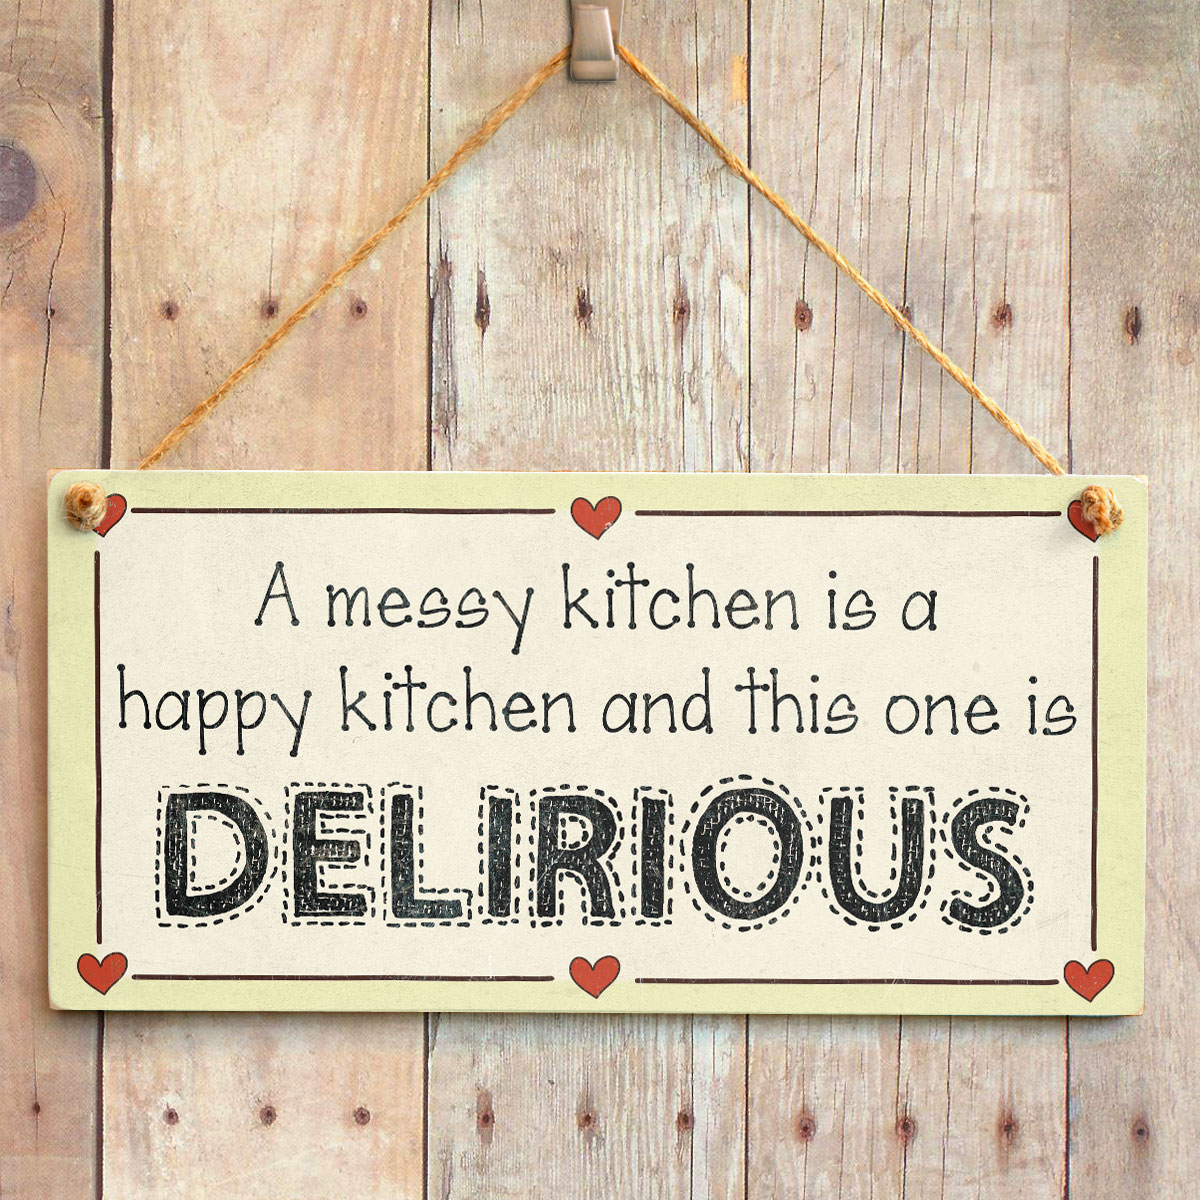 Messy Kitchen Quotes: A Messy Kitchen Is A Happy Kitchen And This One Is